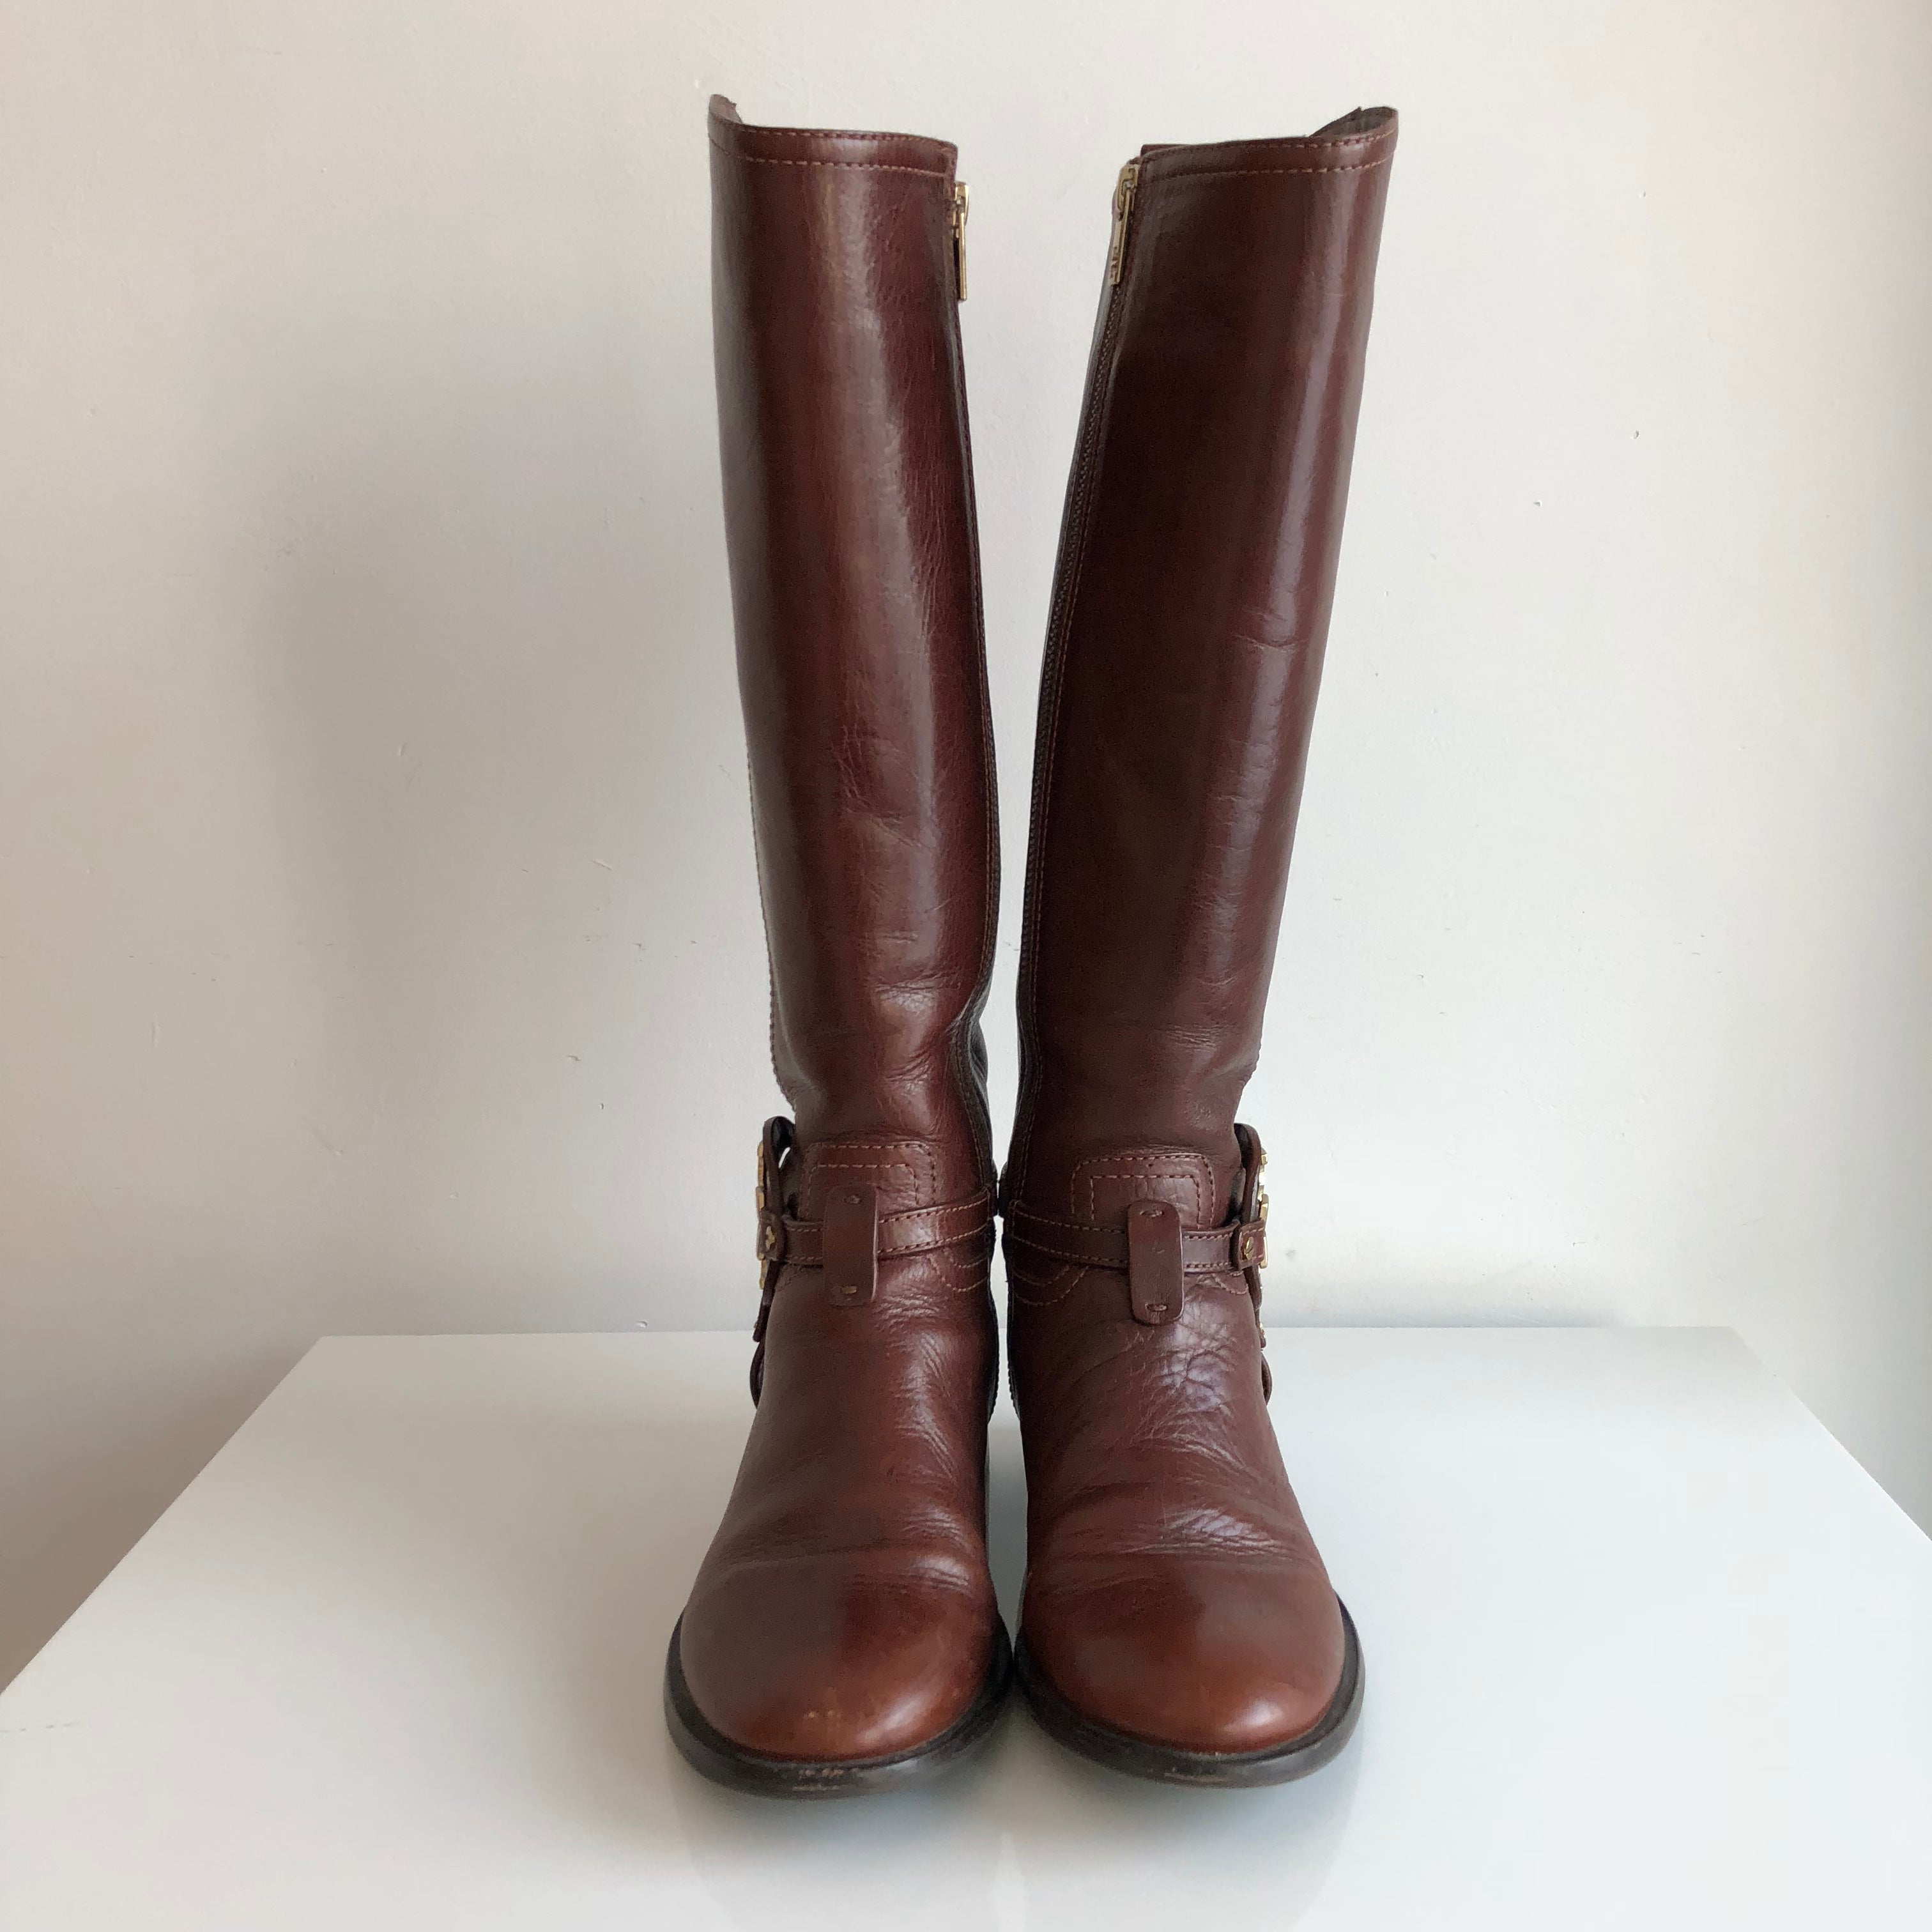 Authentic TORY BURCH Boots Size 5.5/6